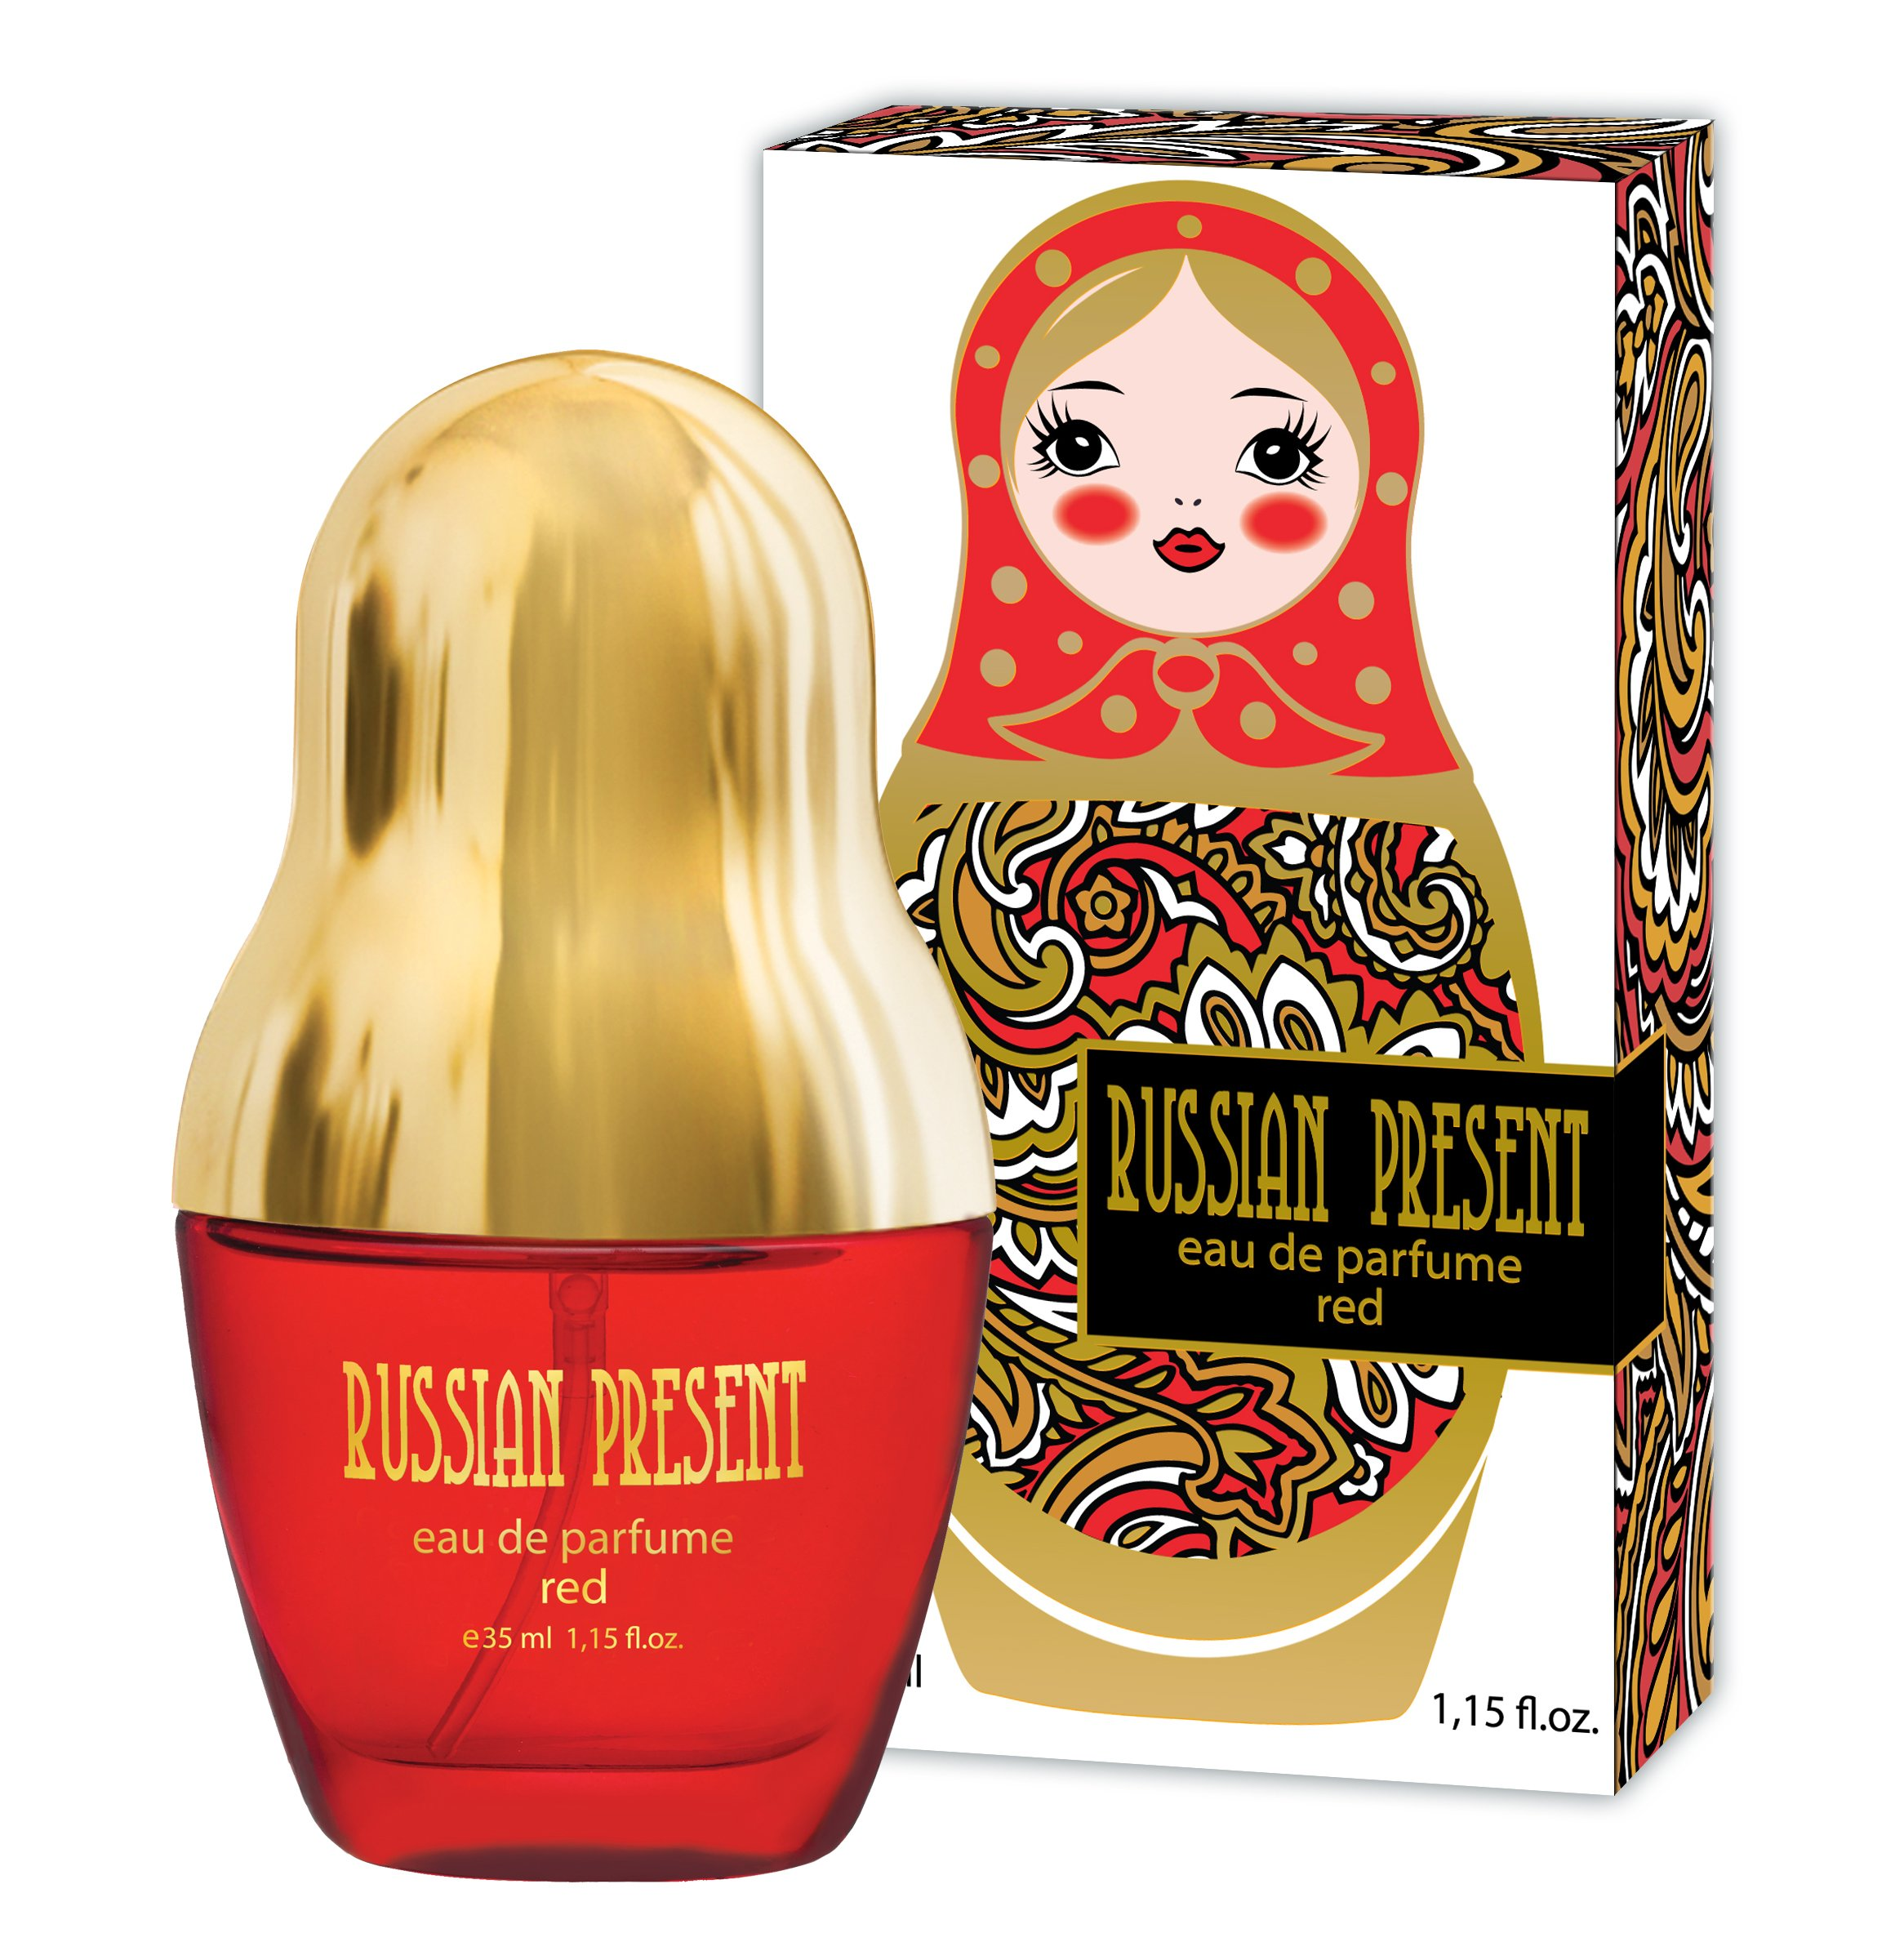 Russian Present Eau De Parfum Spray For Women Red 1 15 Oz Floral Fruity Scent Flat Shaped Bottle Best Gift For Her Jodyshop